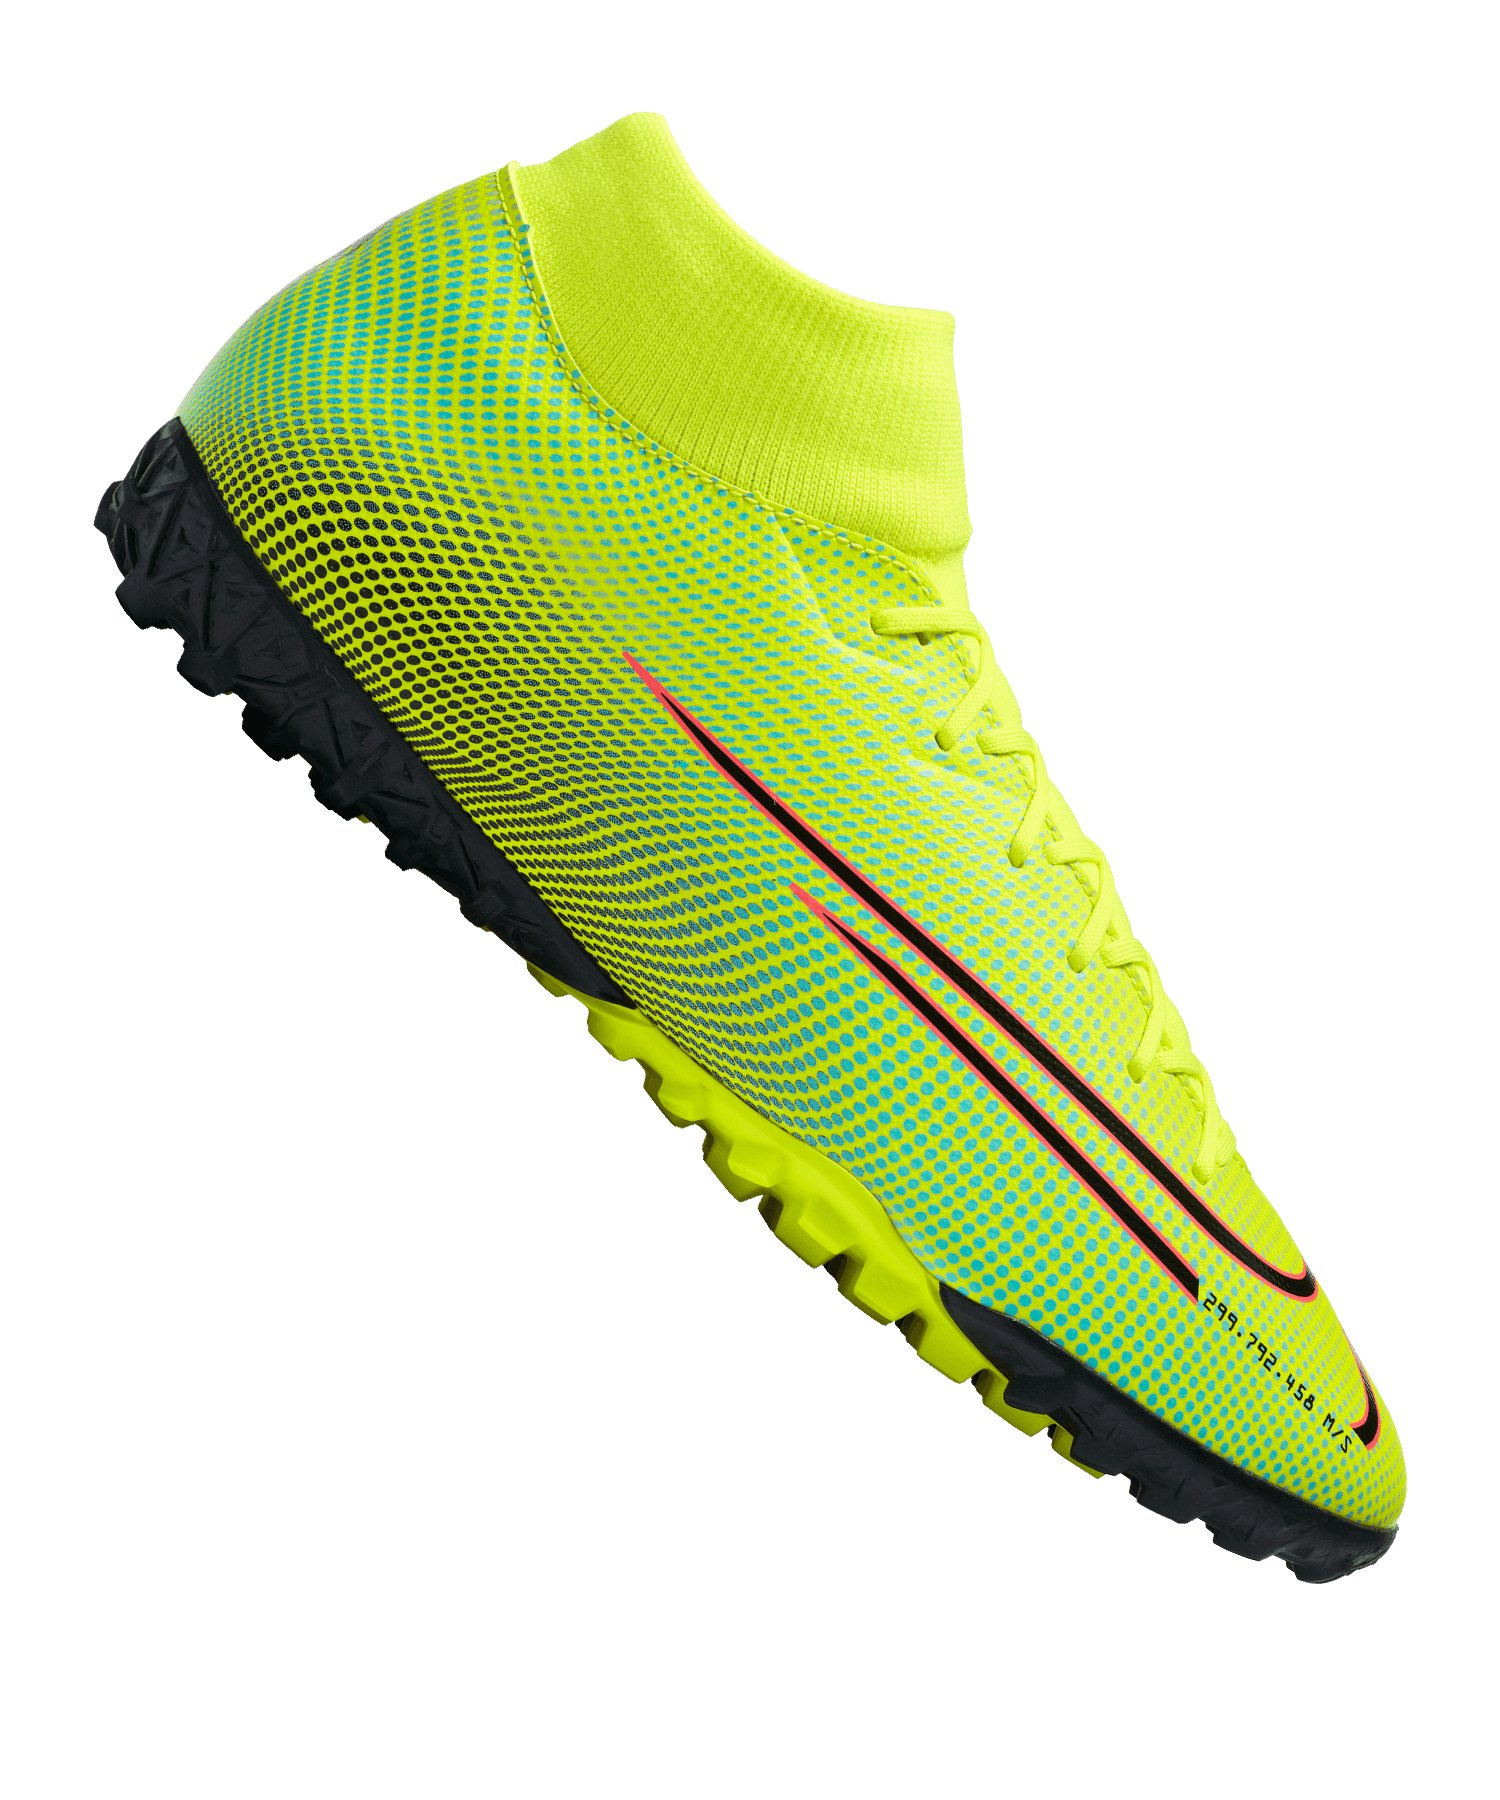 Nike Mercurial Superfly VII Dreamspeed Academy TF Gelb F703 - gelb